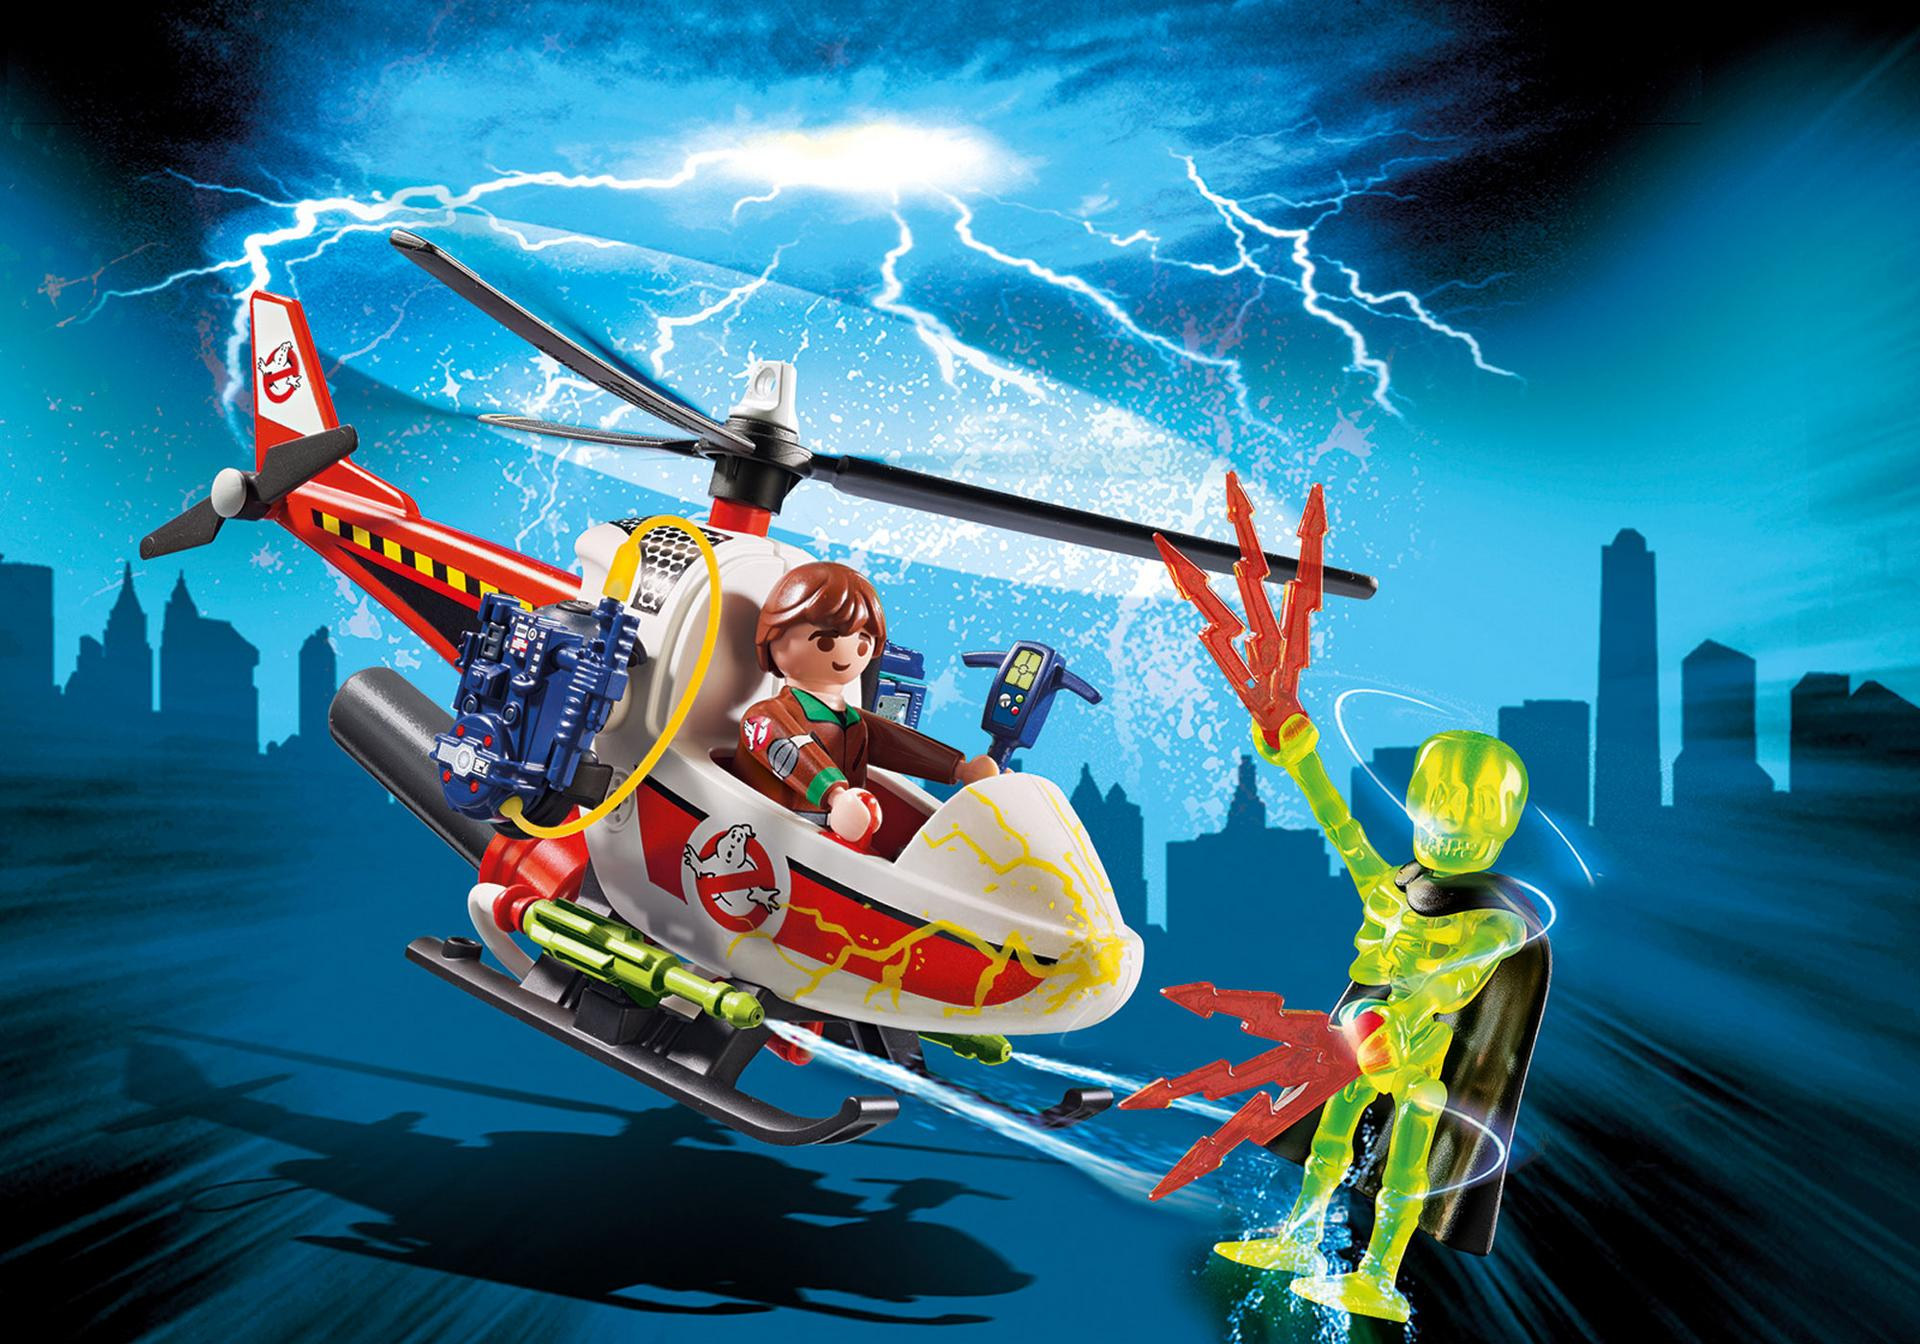 Playmobil: Venkman with Helicopter